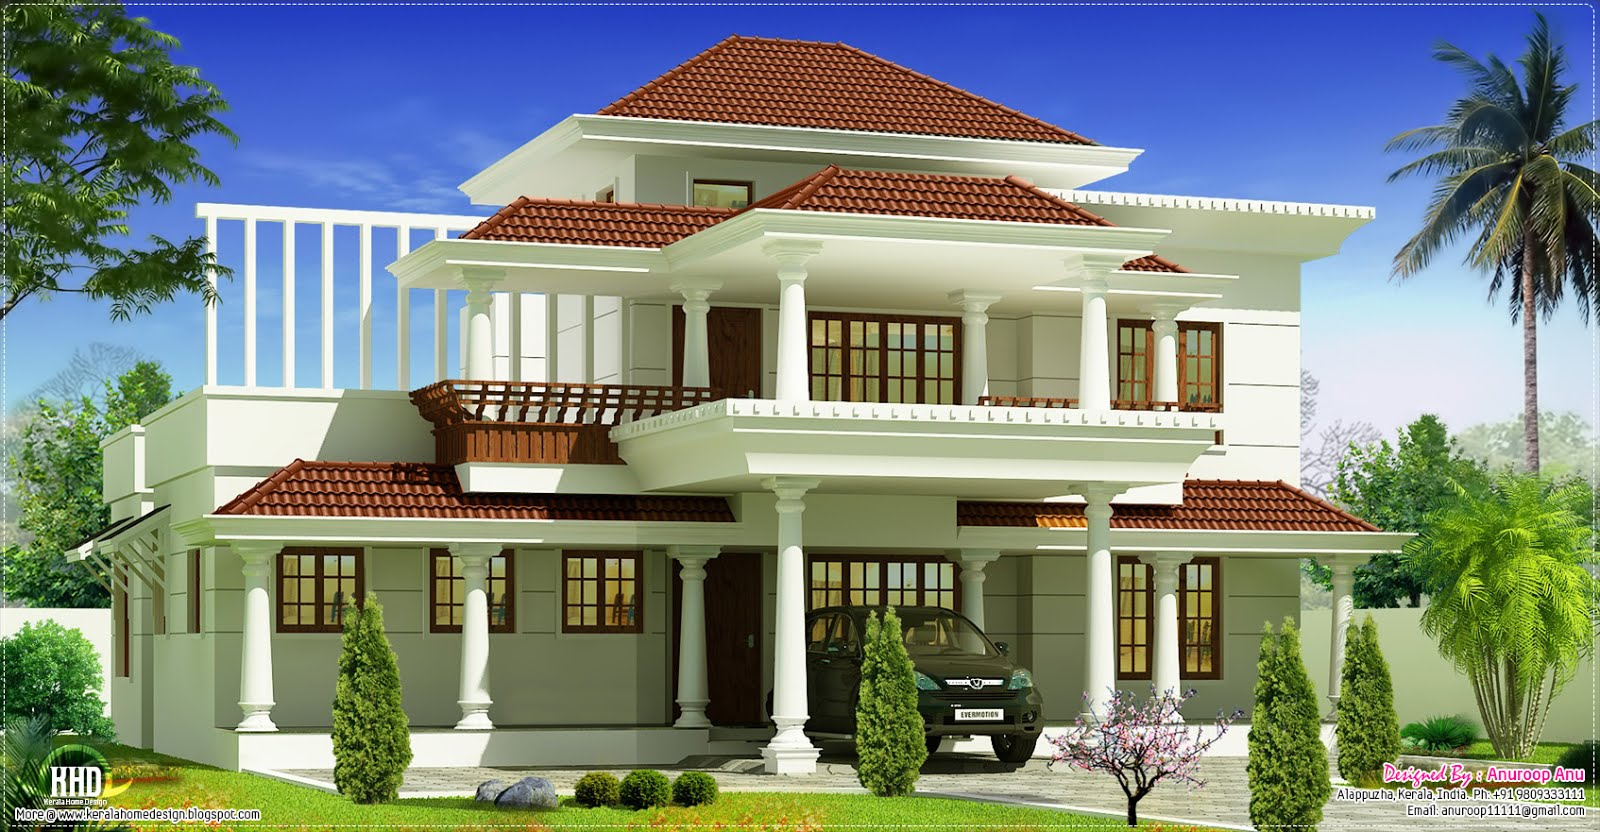 January 2013 Kerala Home Design And Floor Plans: good house designs in india